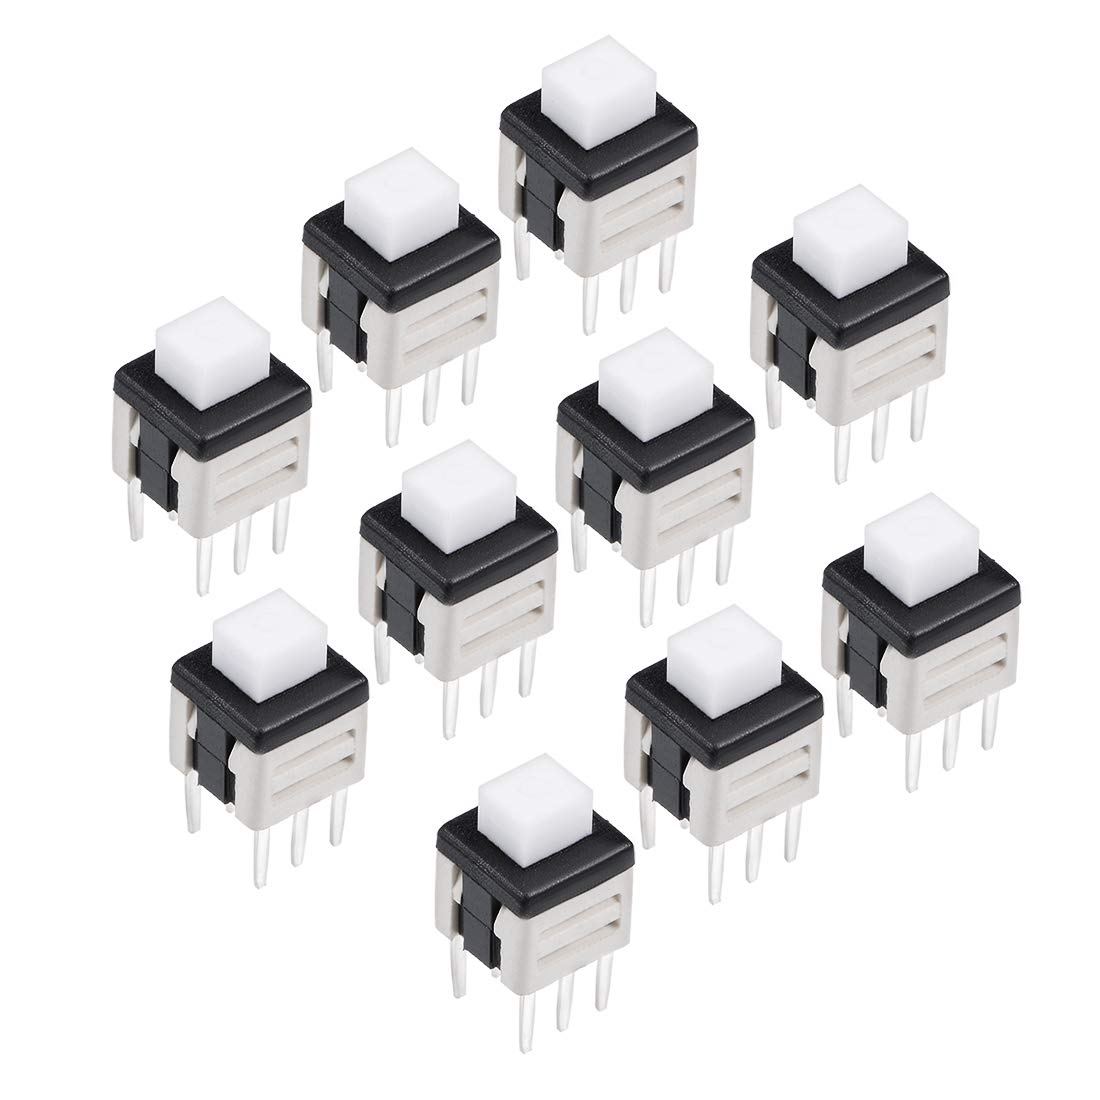 55pcs 6 Pins Dpdt Latching Power Micro Push Button Switches 85x85 Circuit 85x85mm Uxcell A14061000ux0467